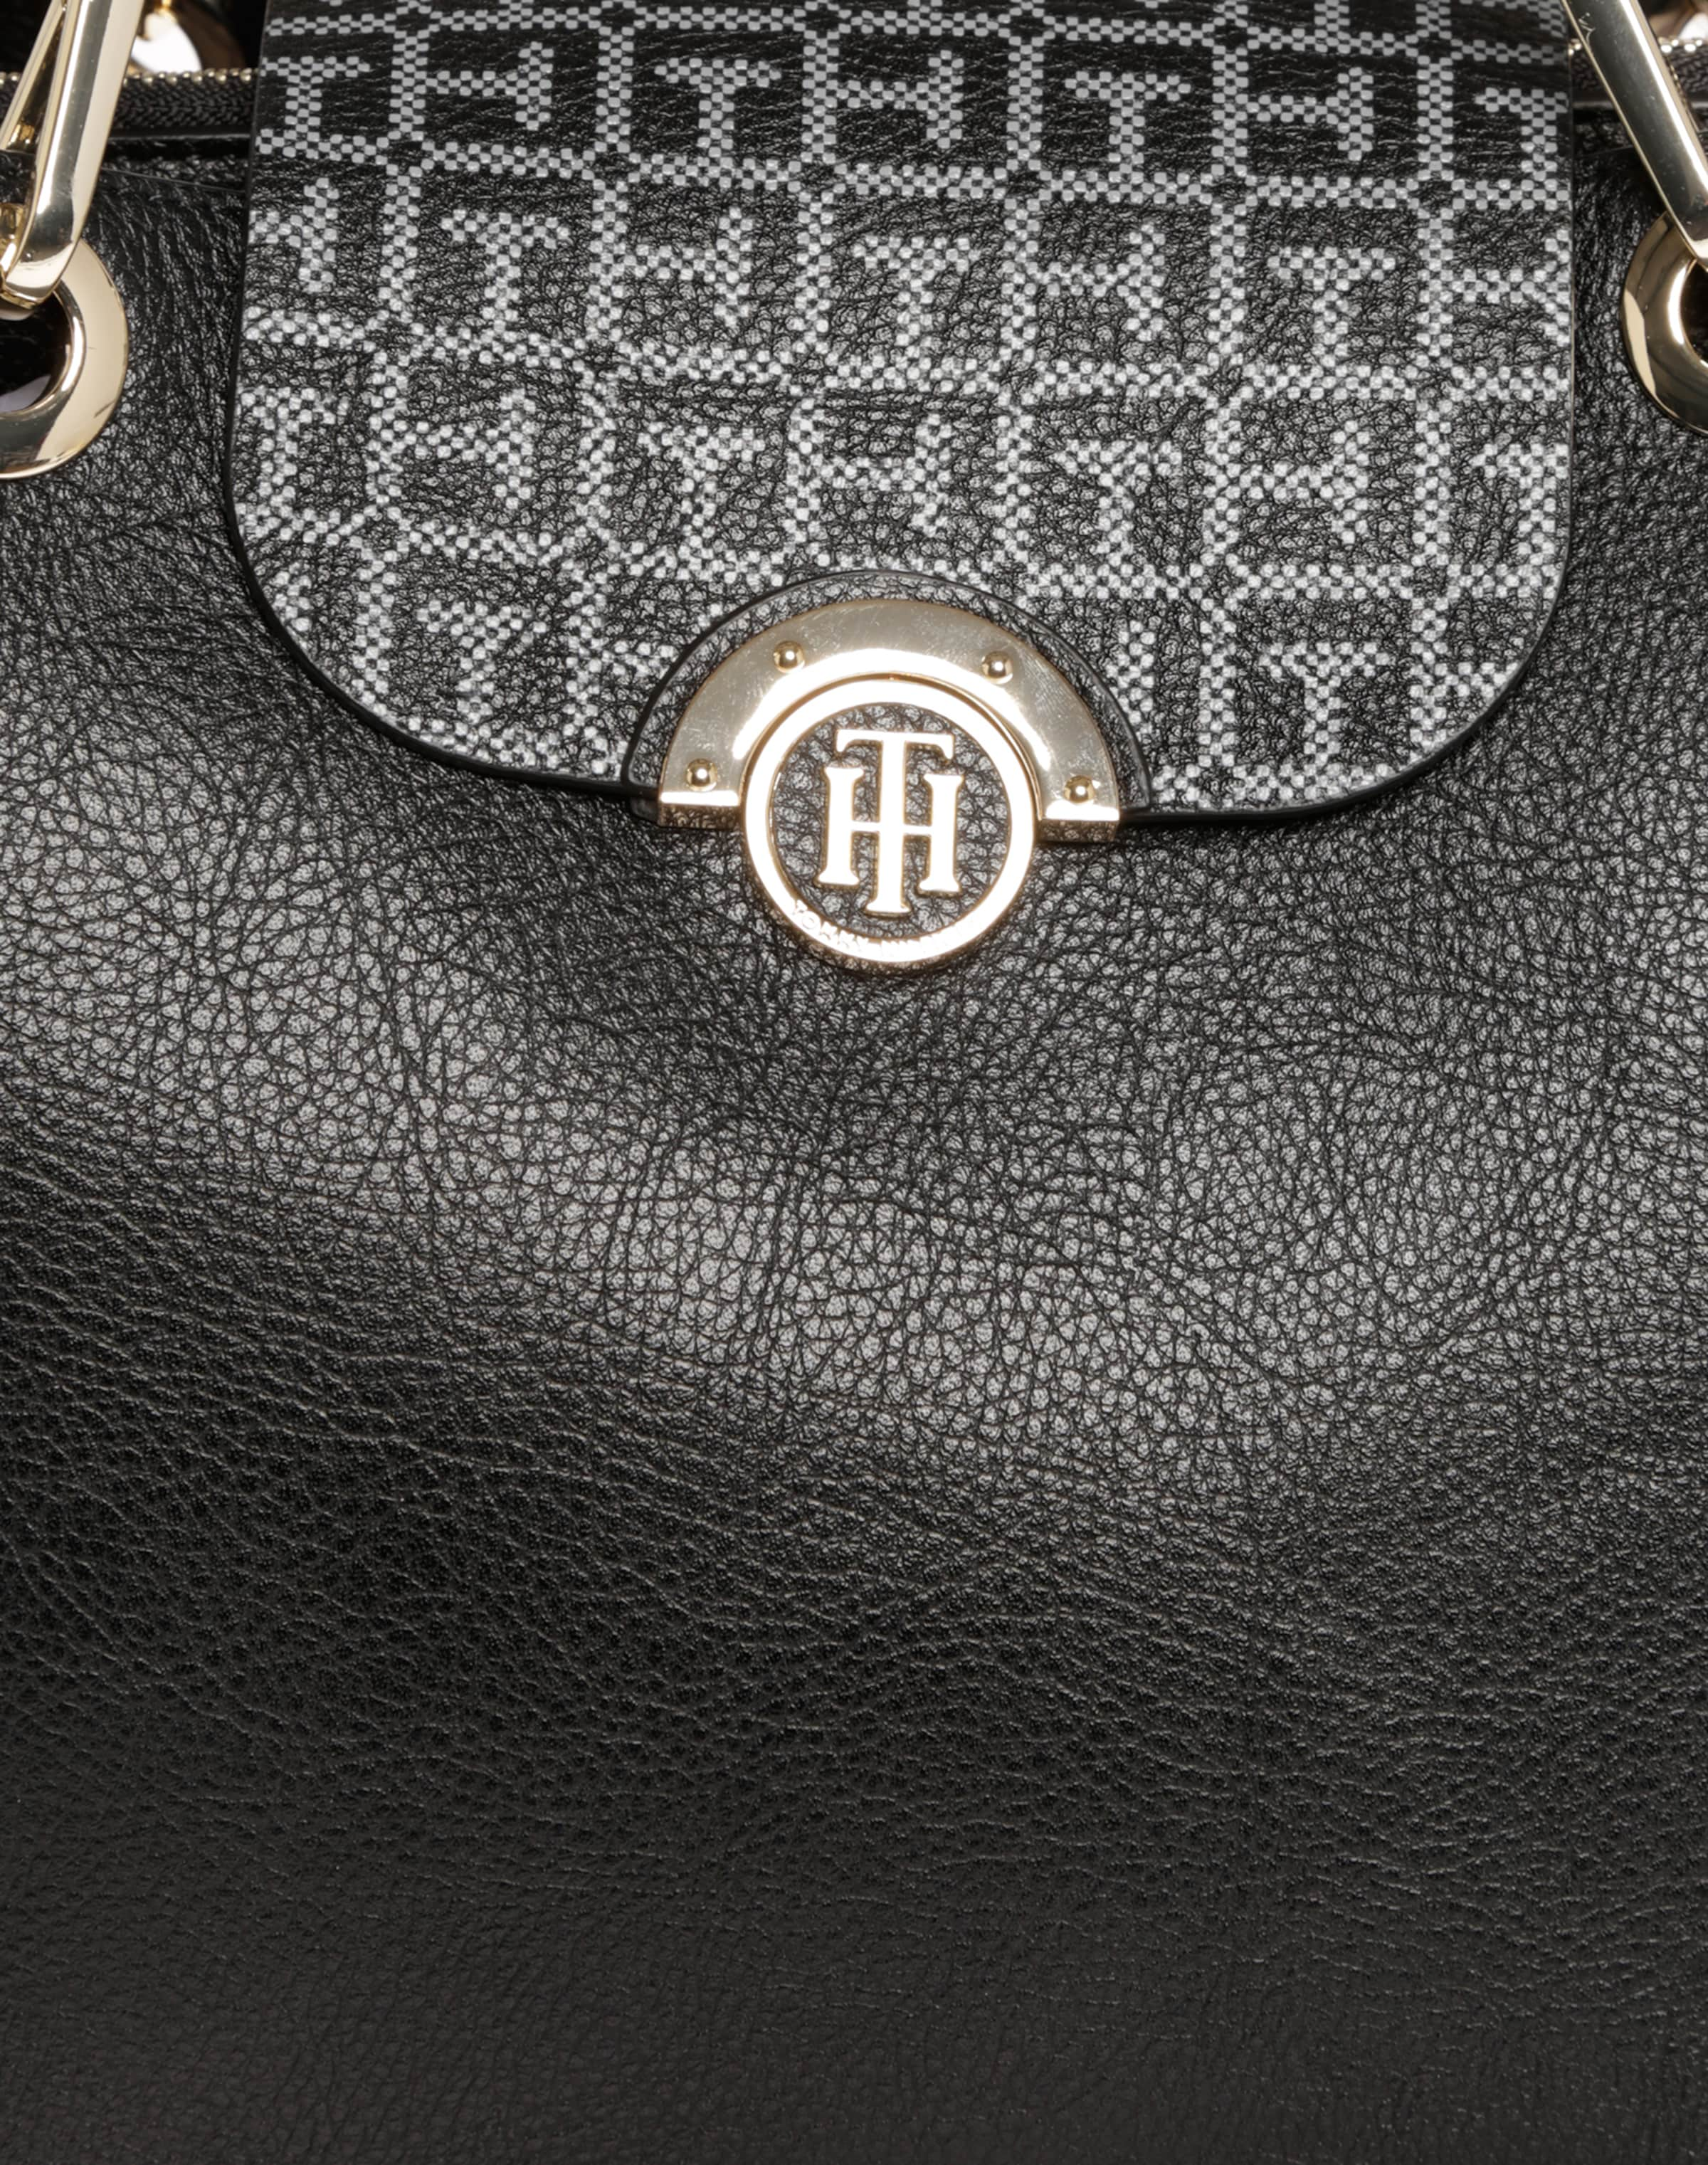 HILFIGER Novelty' TOMMY Novelty' TOMMY 'Effortless Handtasche Handtasche 'Effortless HILFIGER dg7wxqXq